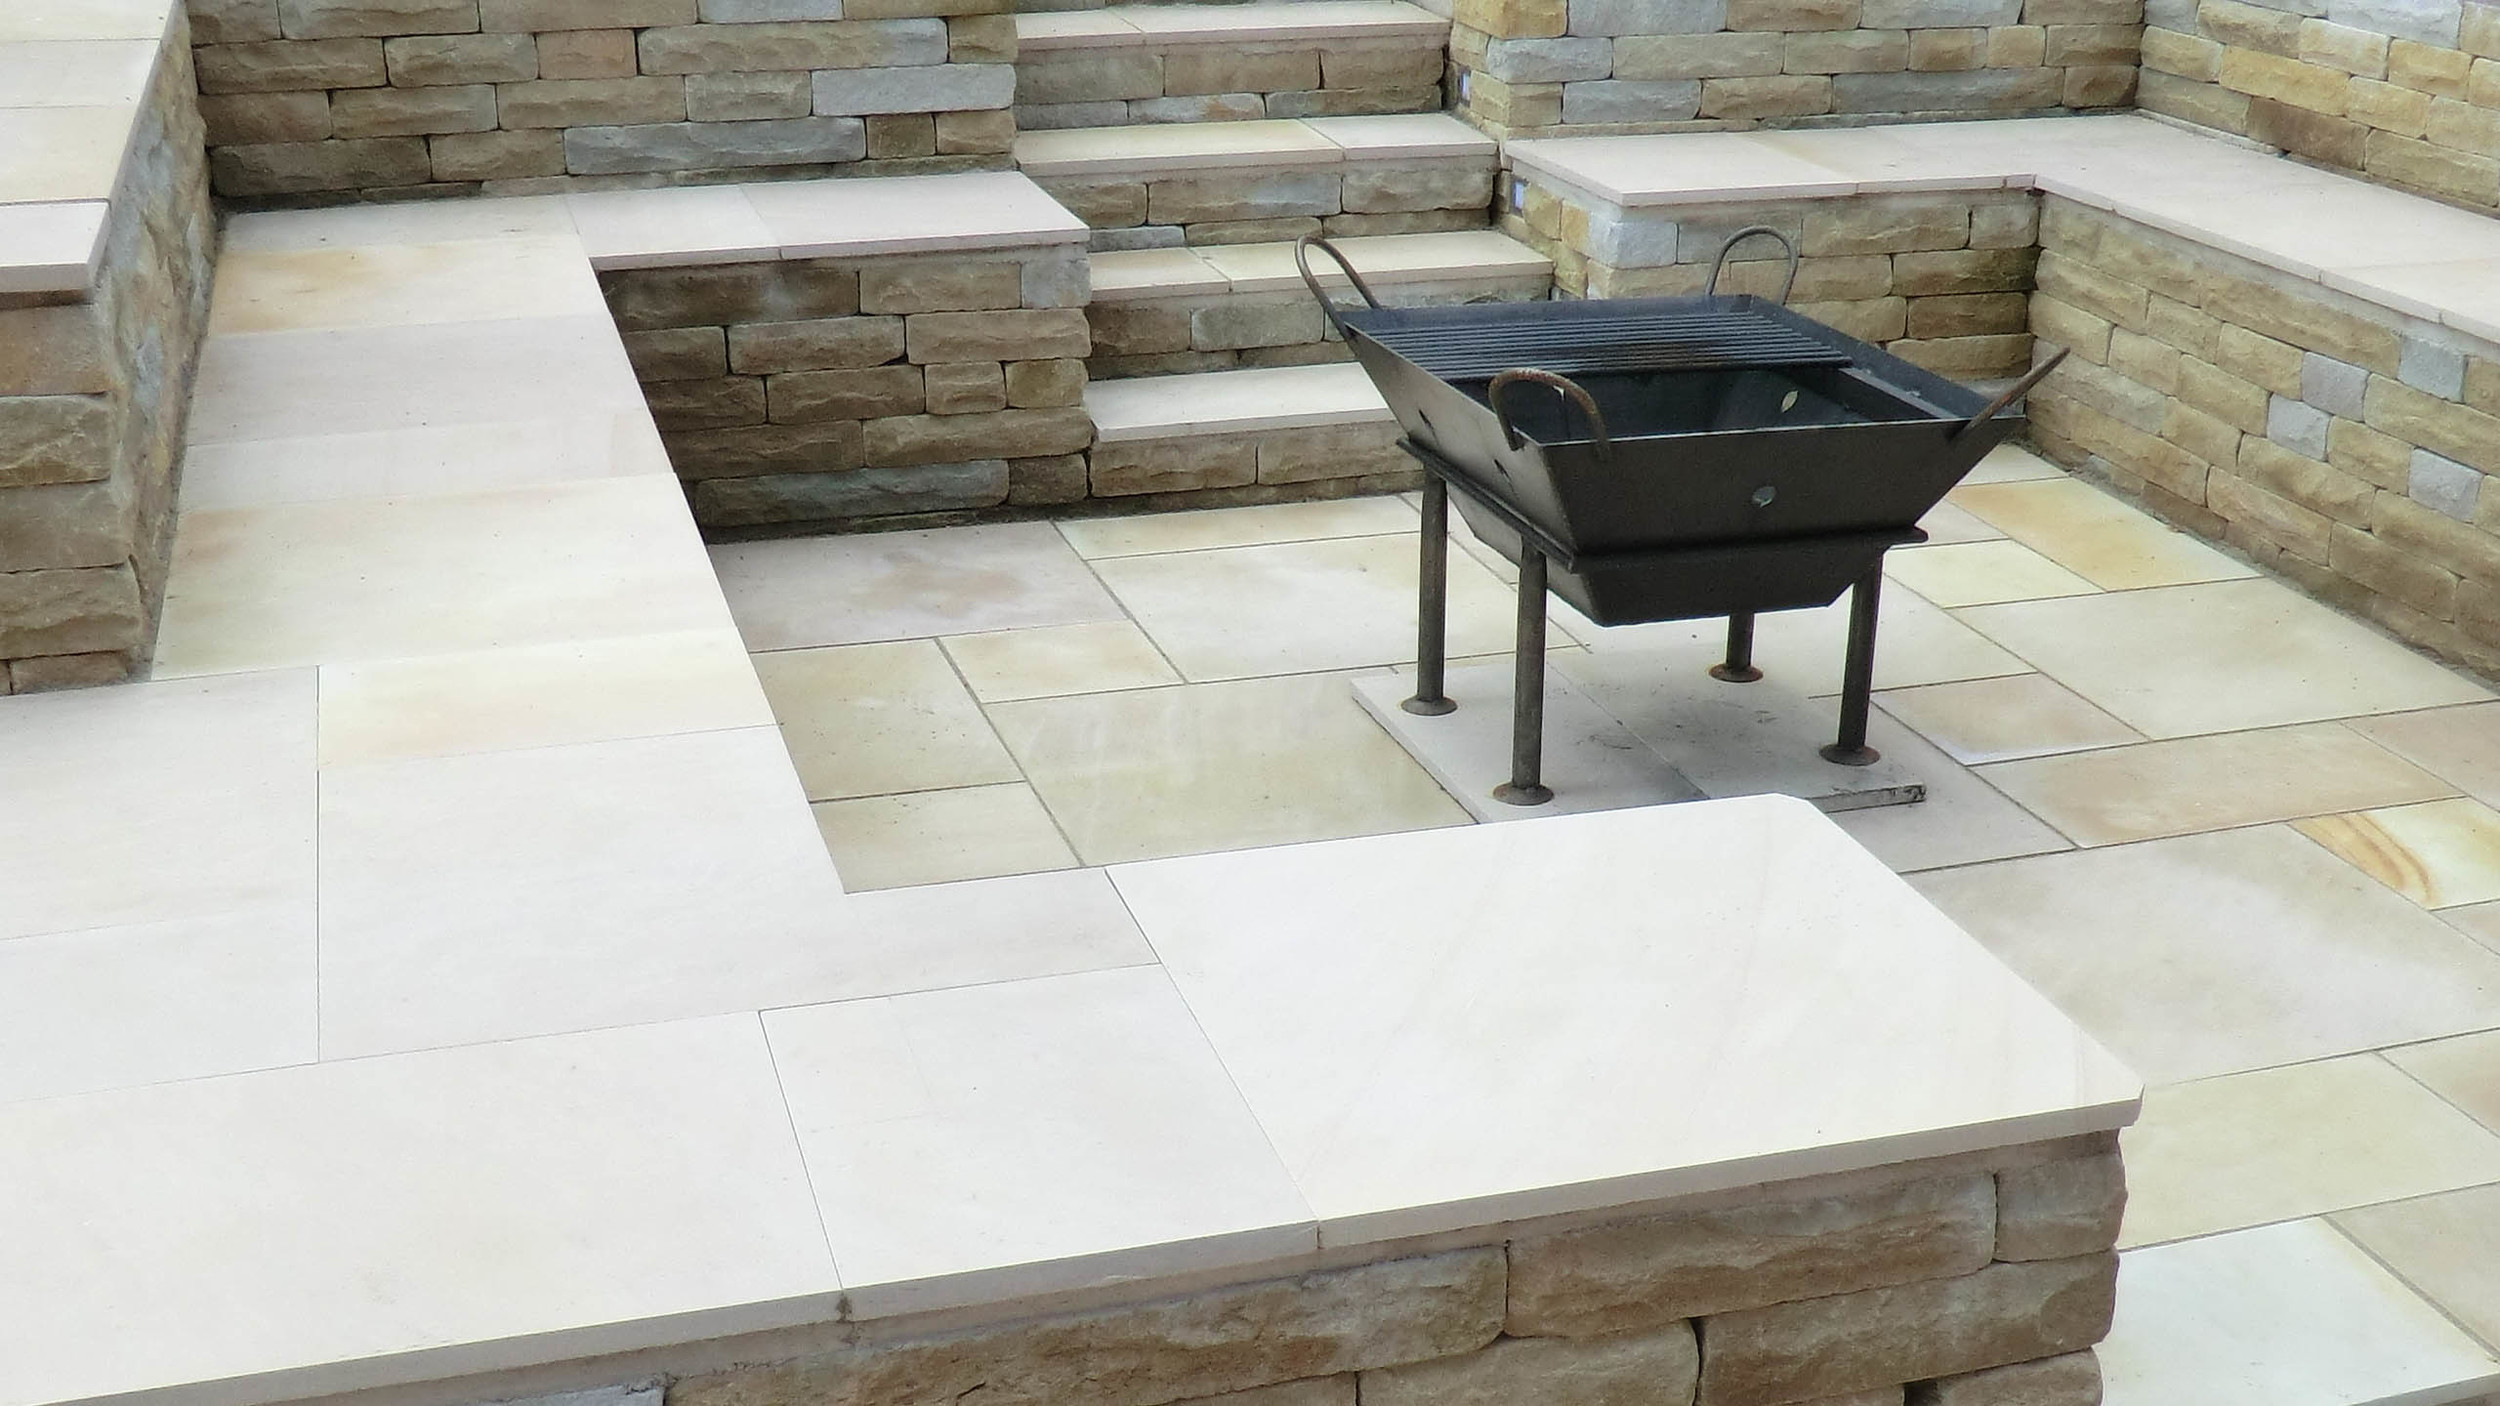 Cheshire Garden Design: Sawn Stone Seating Area With Fire Pit.